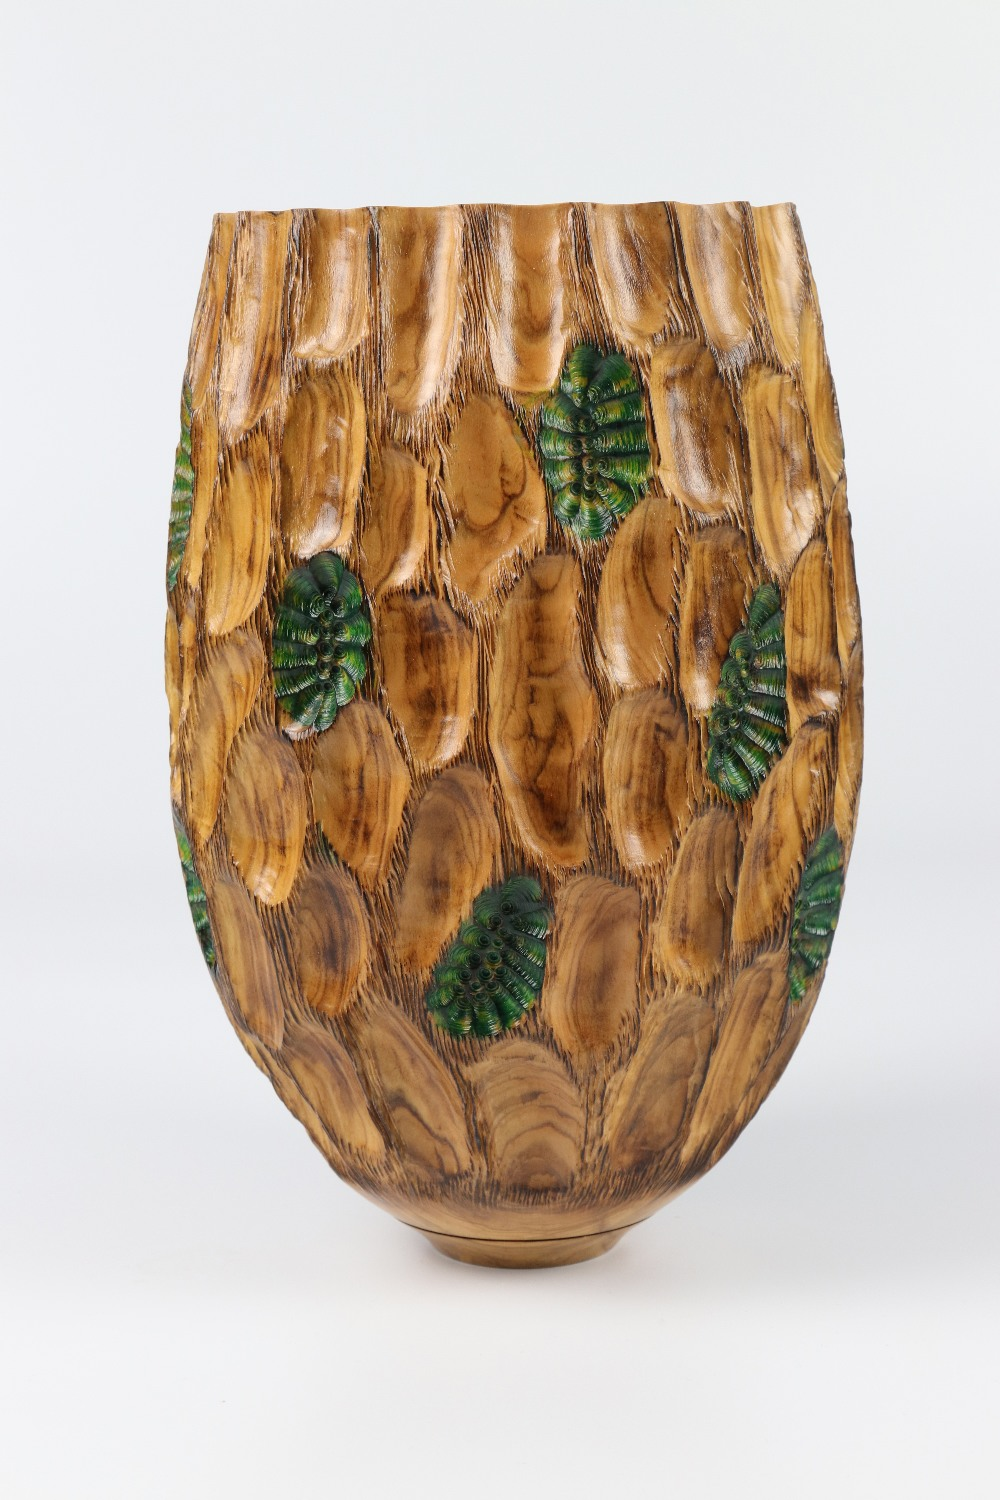 Lot 116 - Tracy Owen (UK) carved and coloured olive vessel 26x16cm. Signed